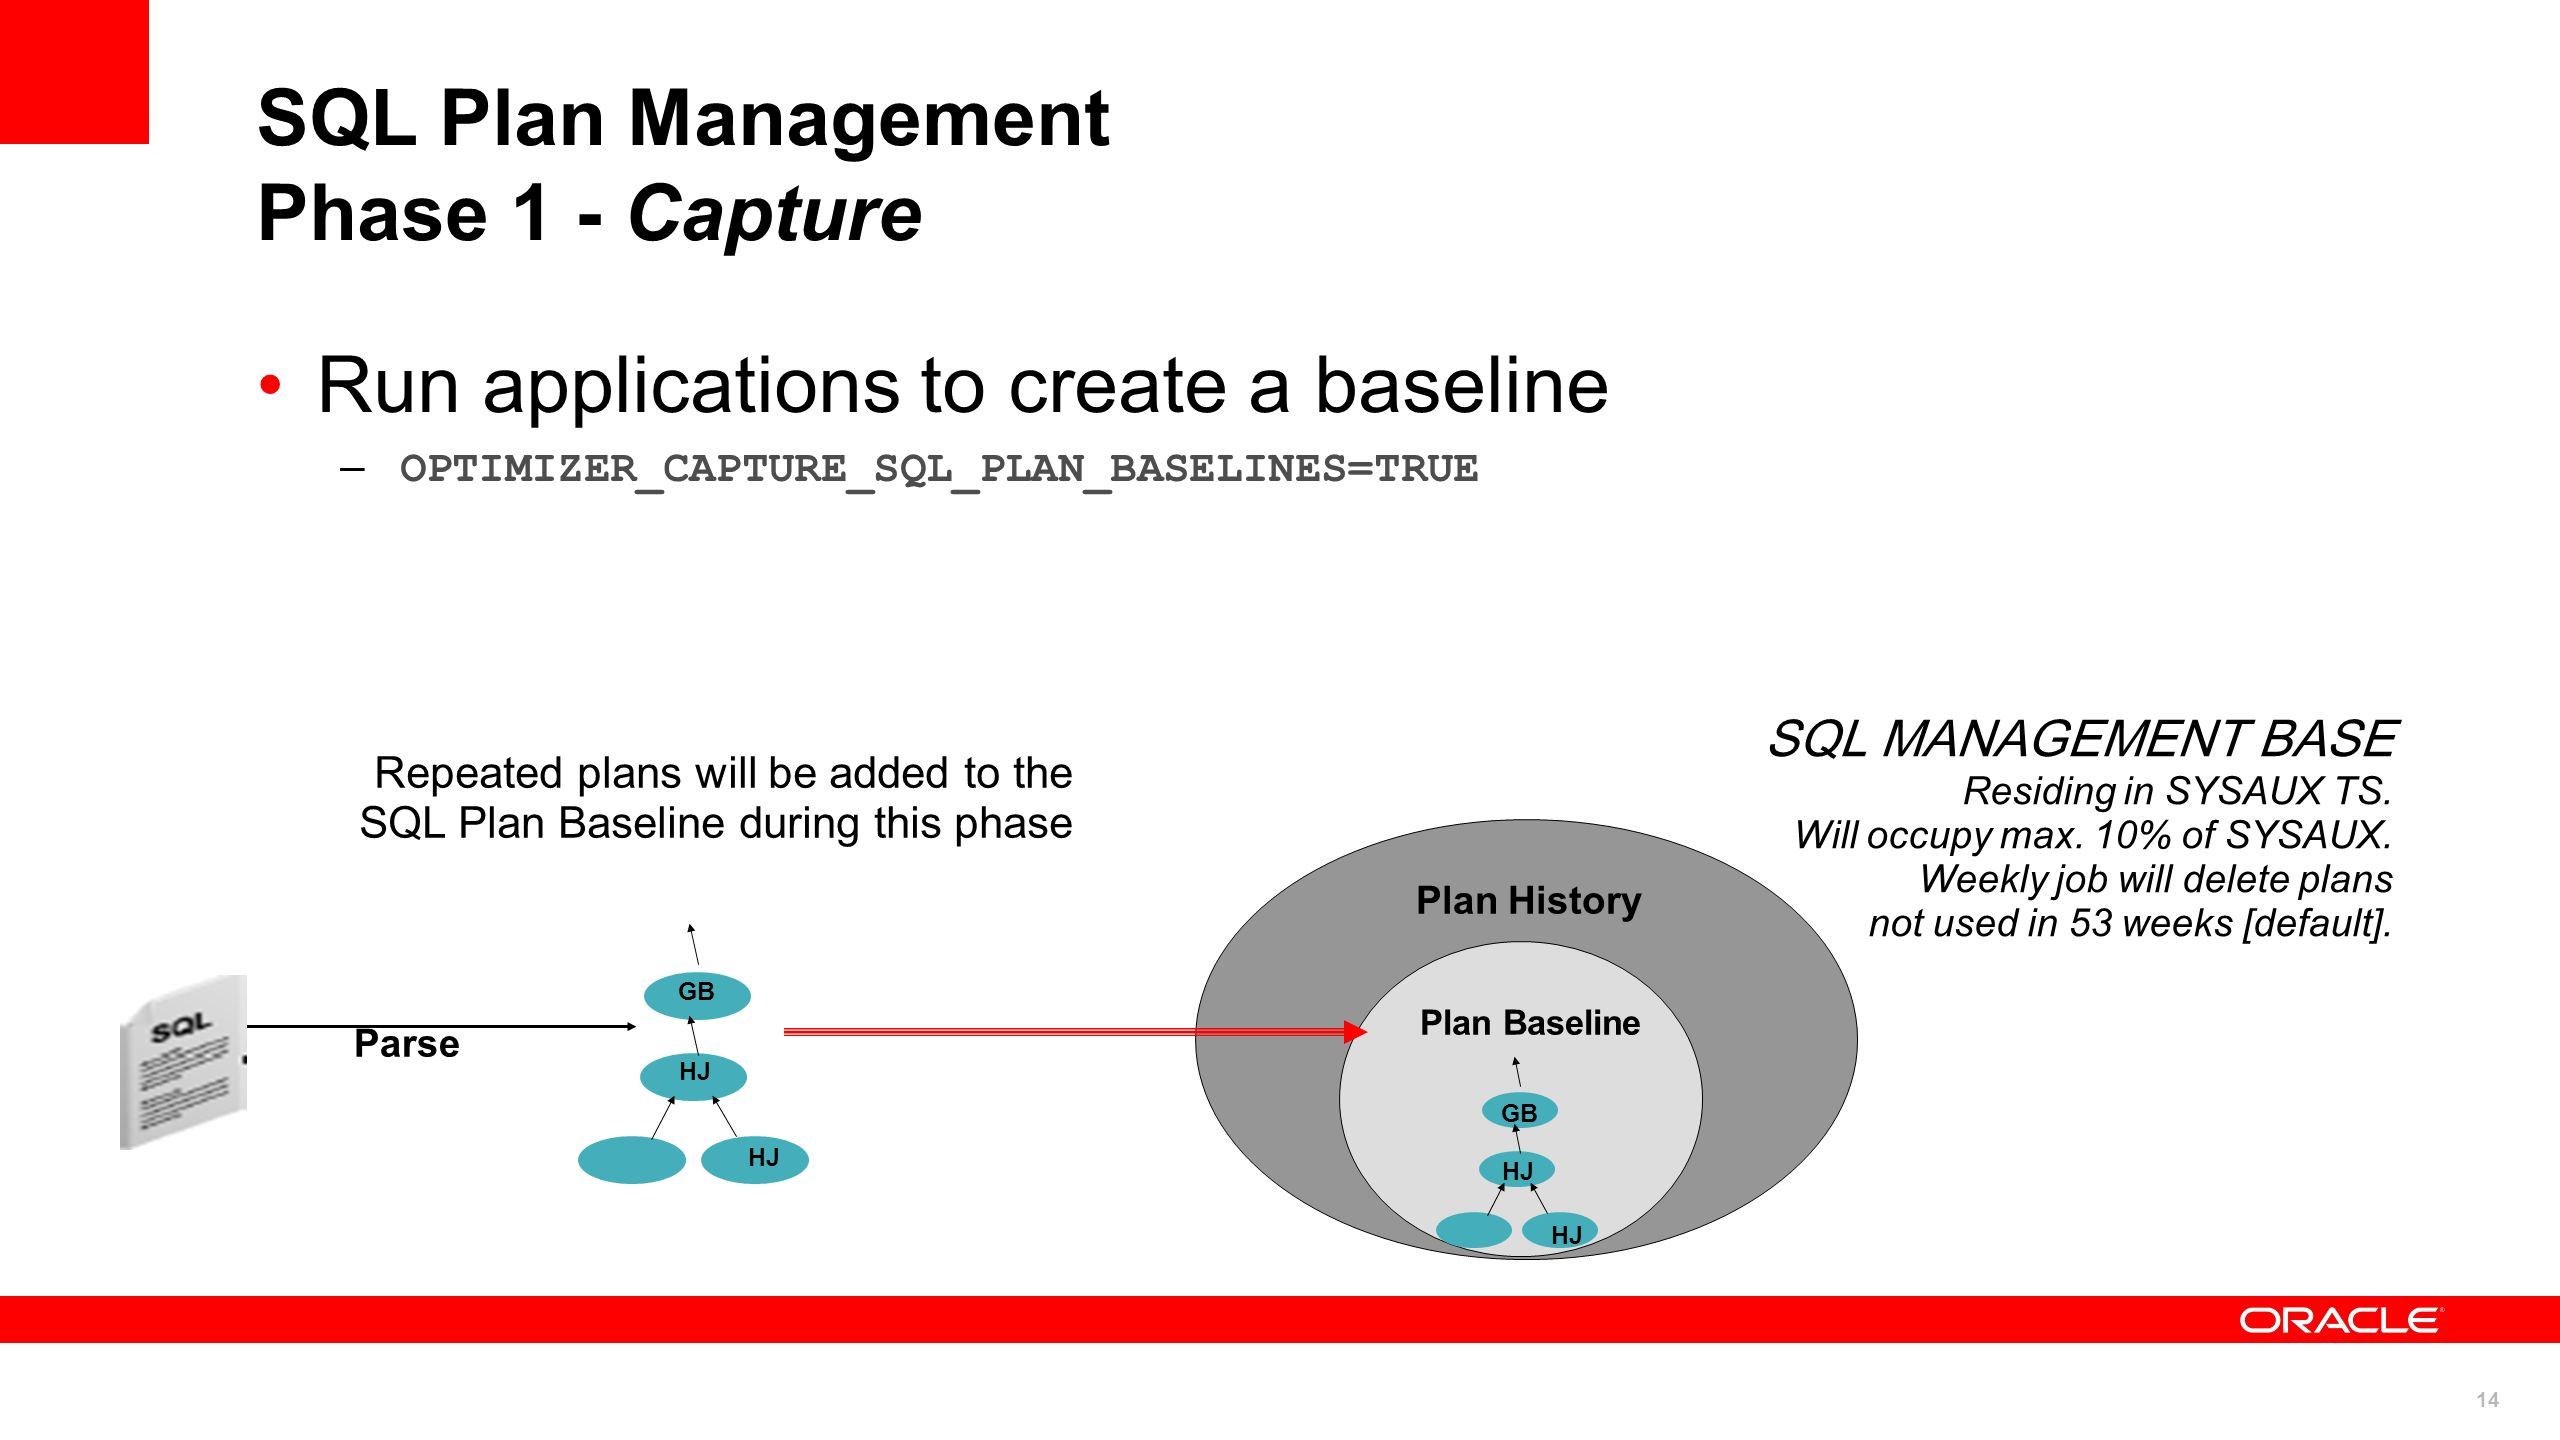 SQL Plan Management Phase 1 - Capture